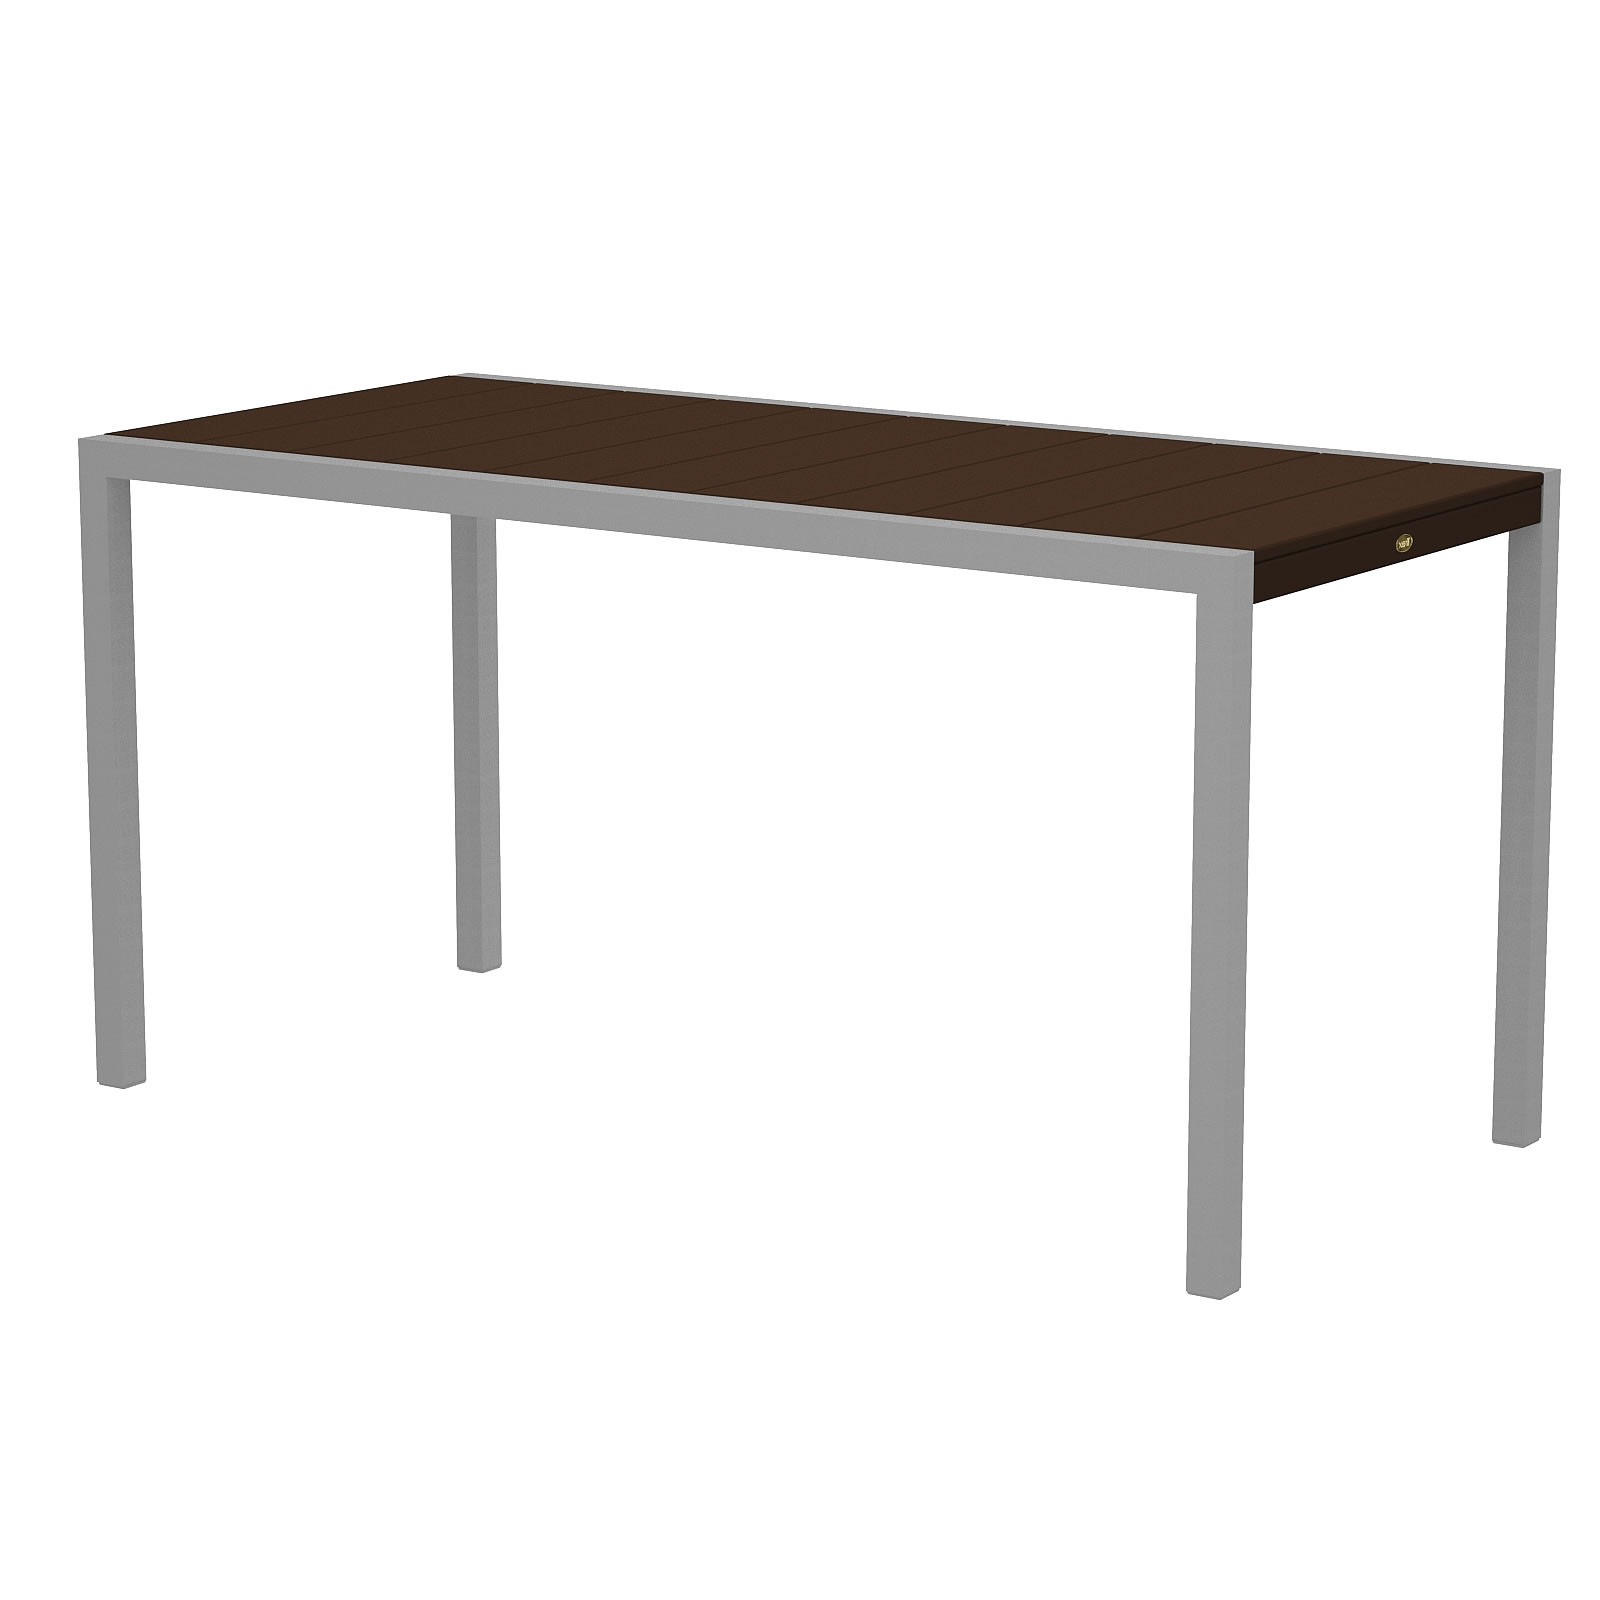 Trex® Outdoor Furniture Surf City 36 x 73 in Counter Table